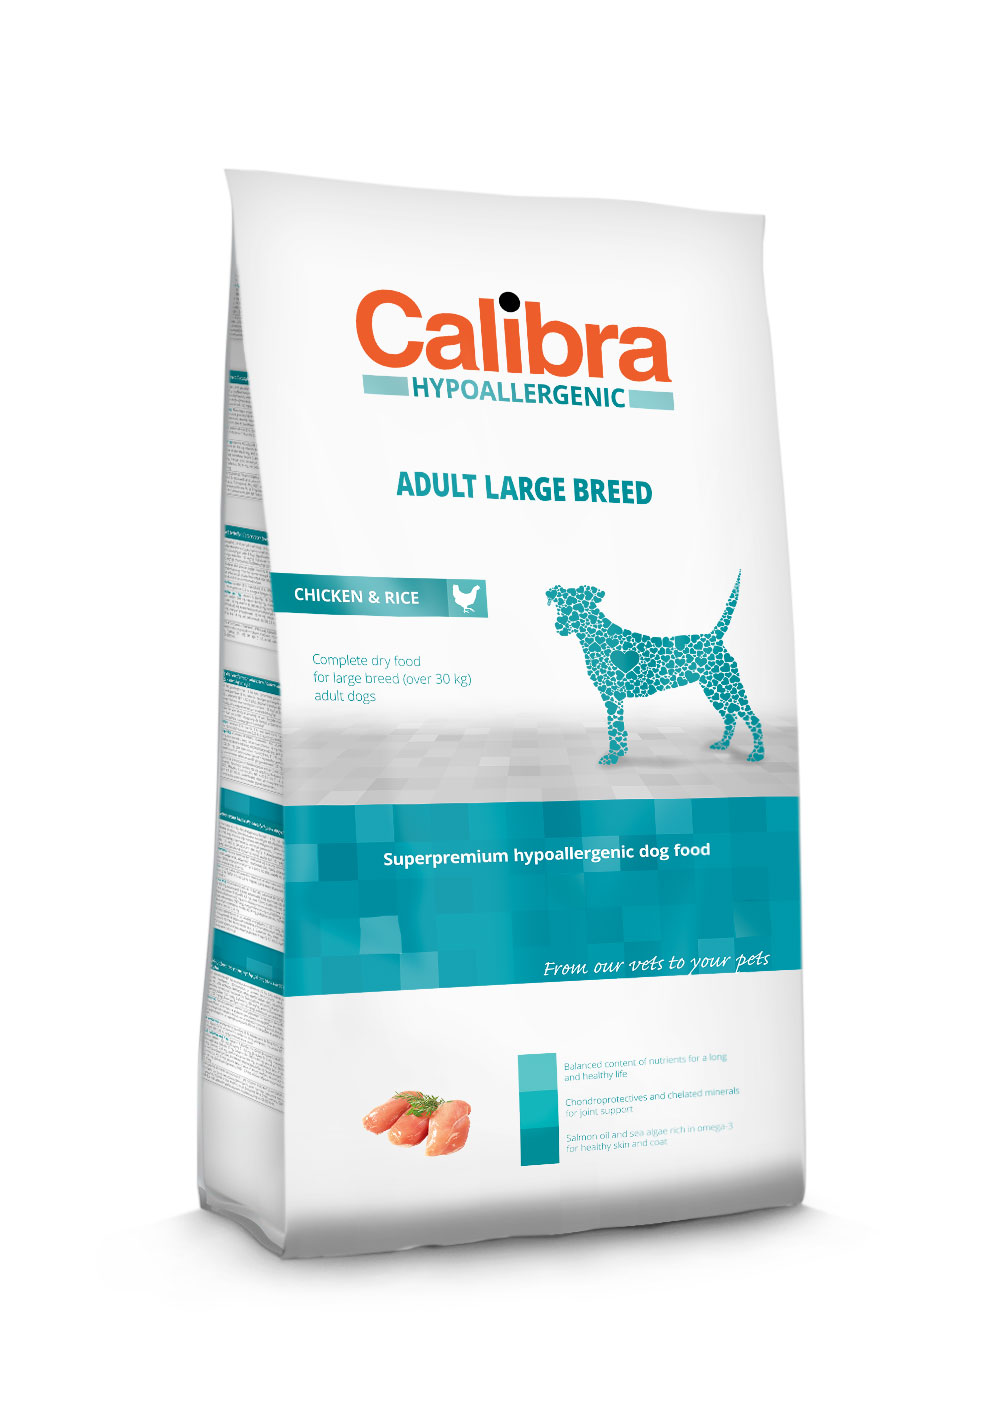 Calibra Dog Hypoallergenic Adult Large Breed / Chicken & Rice 3 Kg